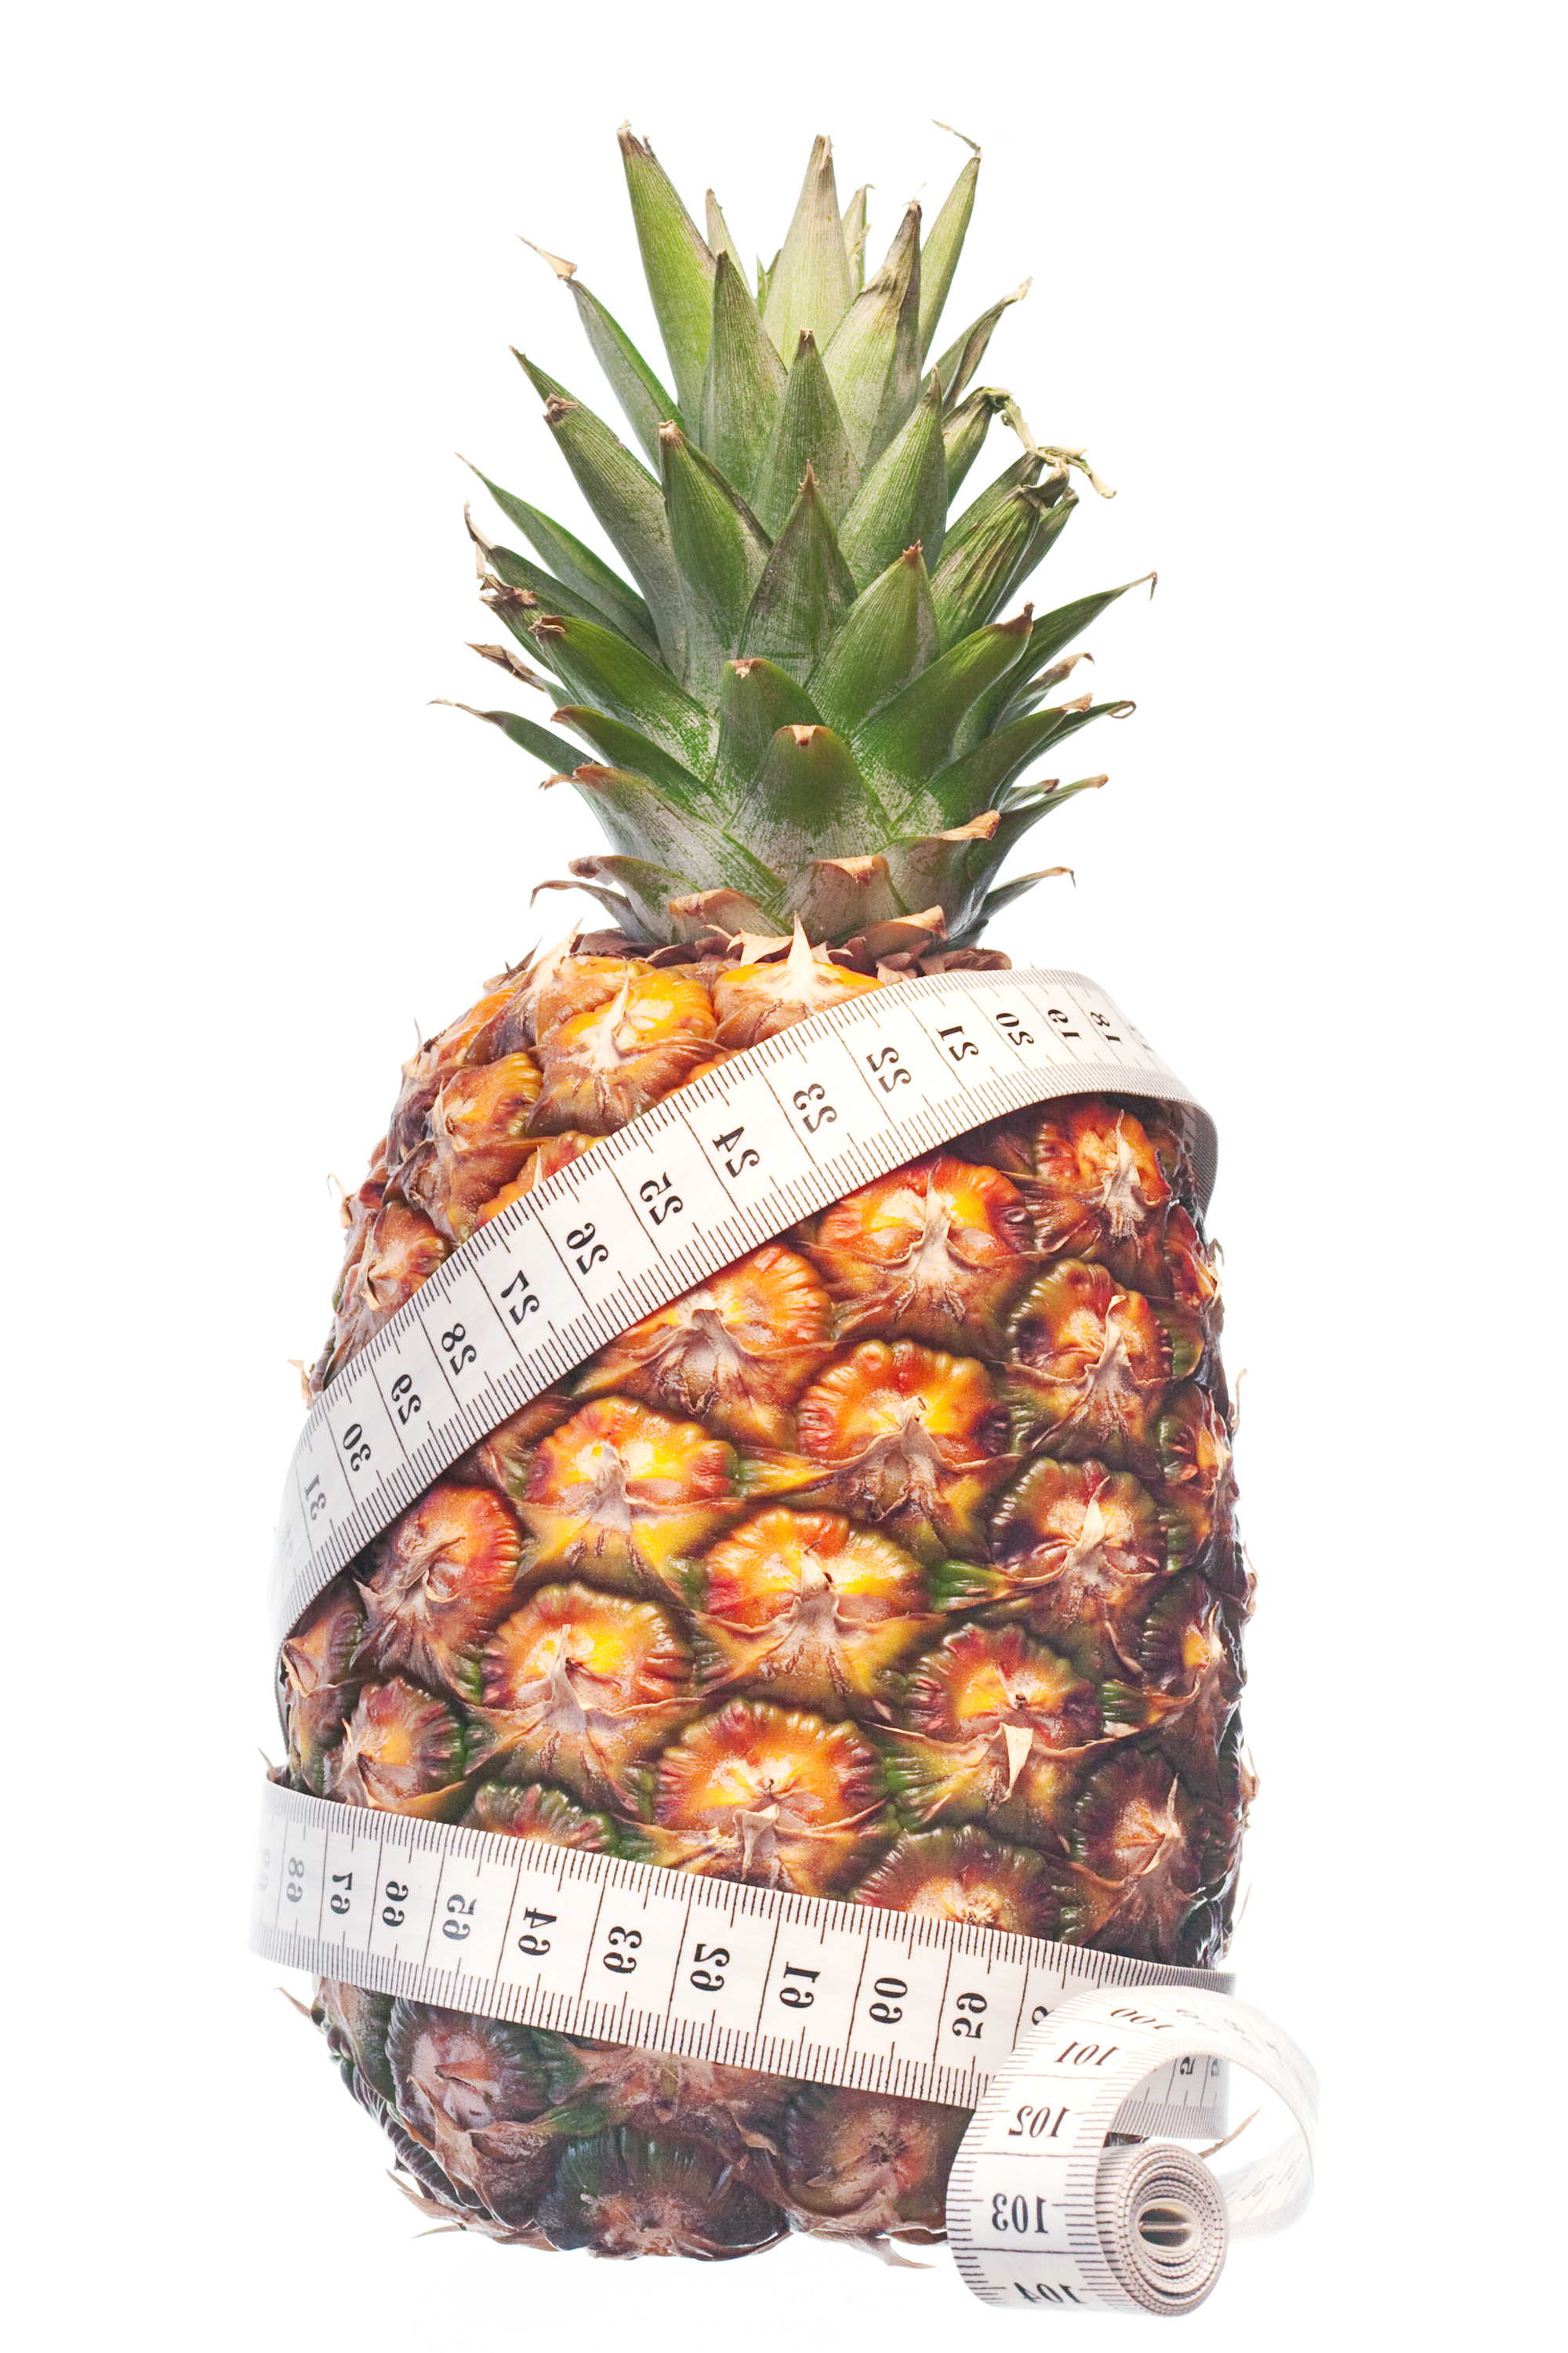 healthy eating, Refreshment, Pineapple, Nutrient, Meal, HQ Photo